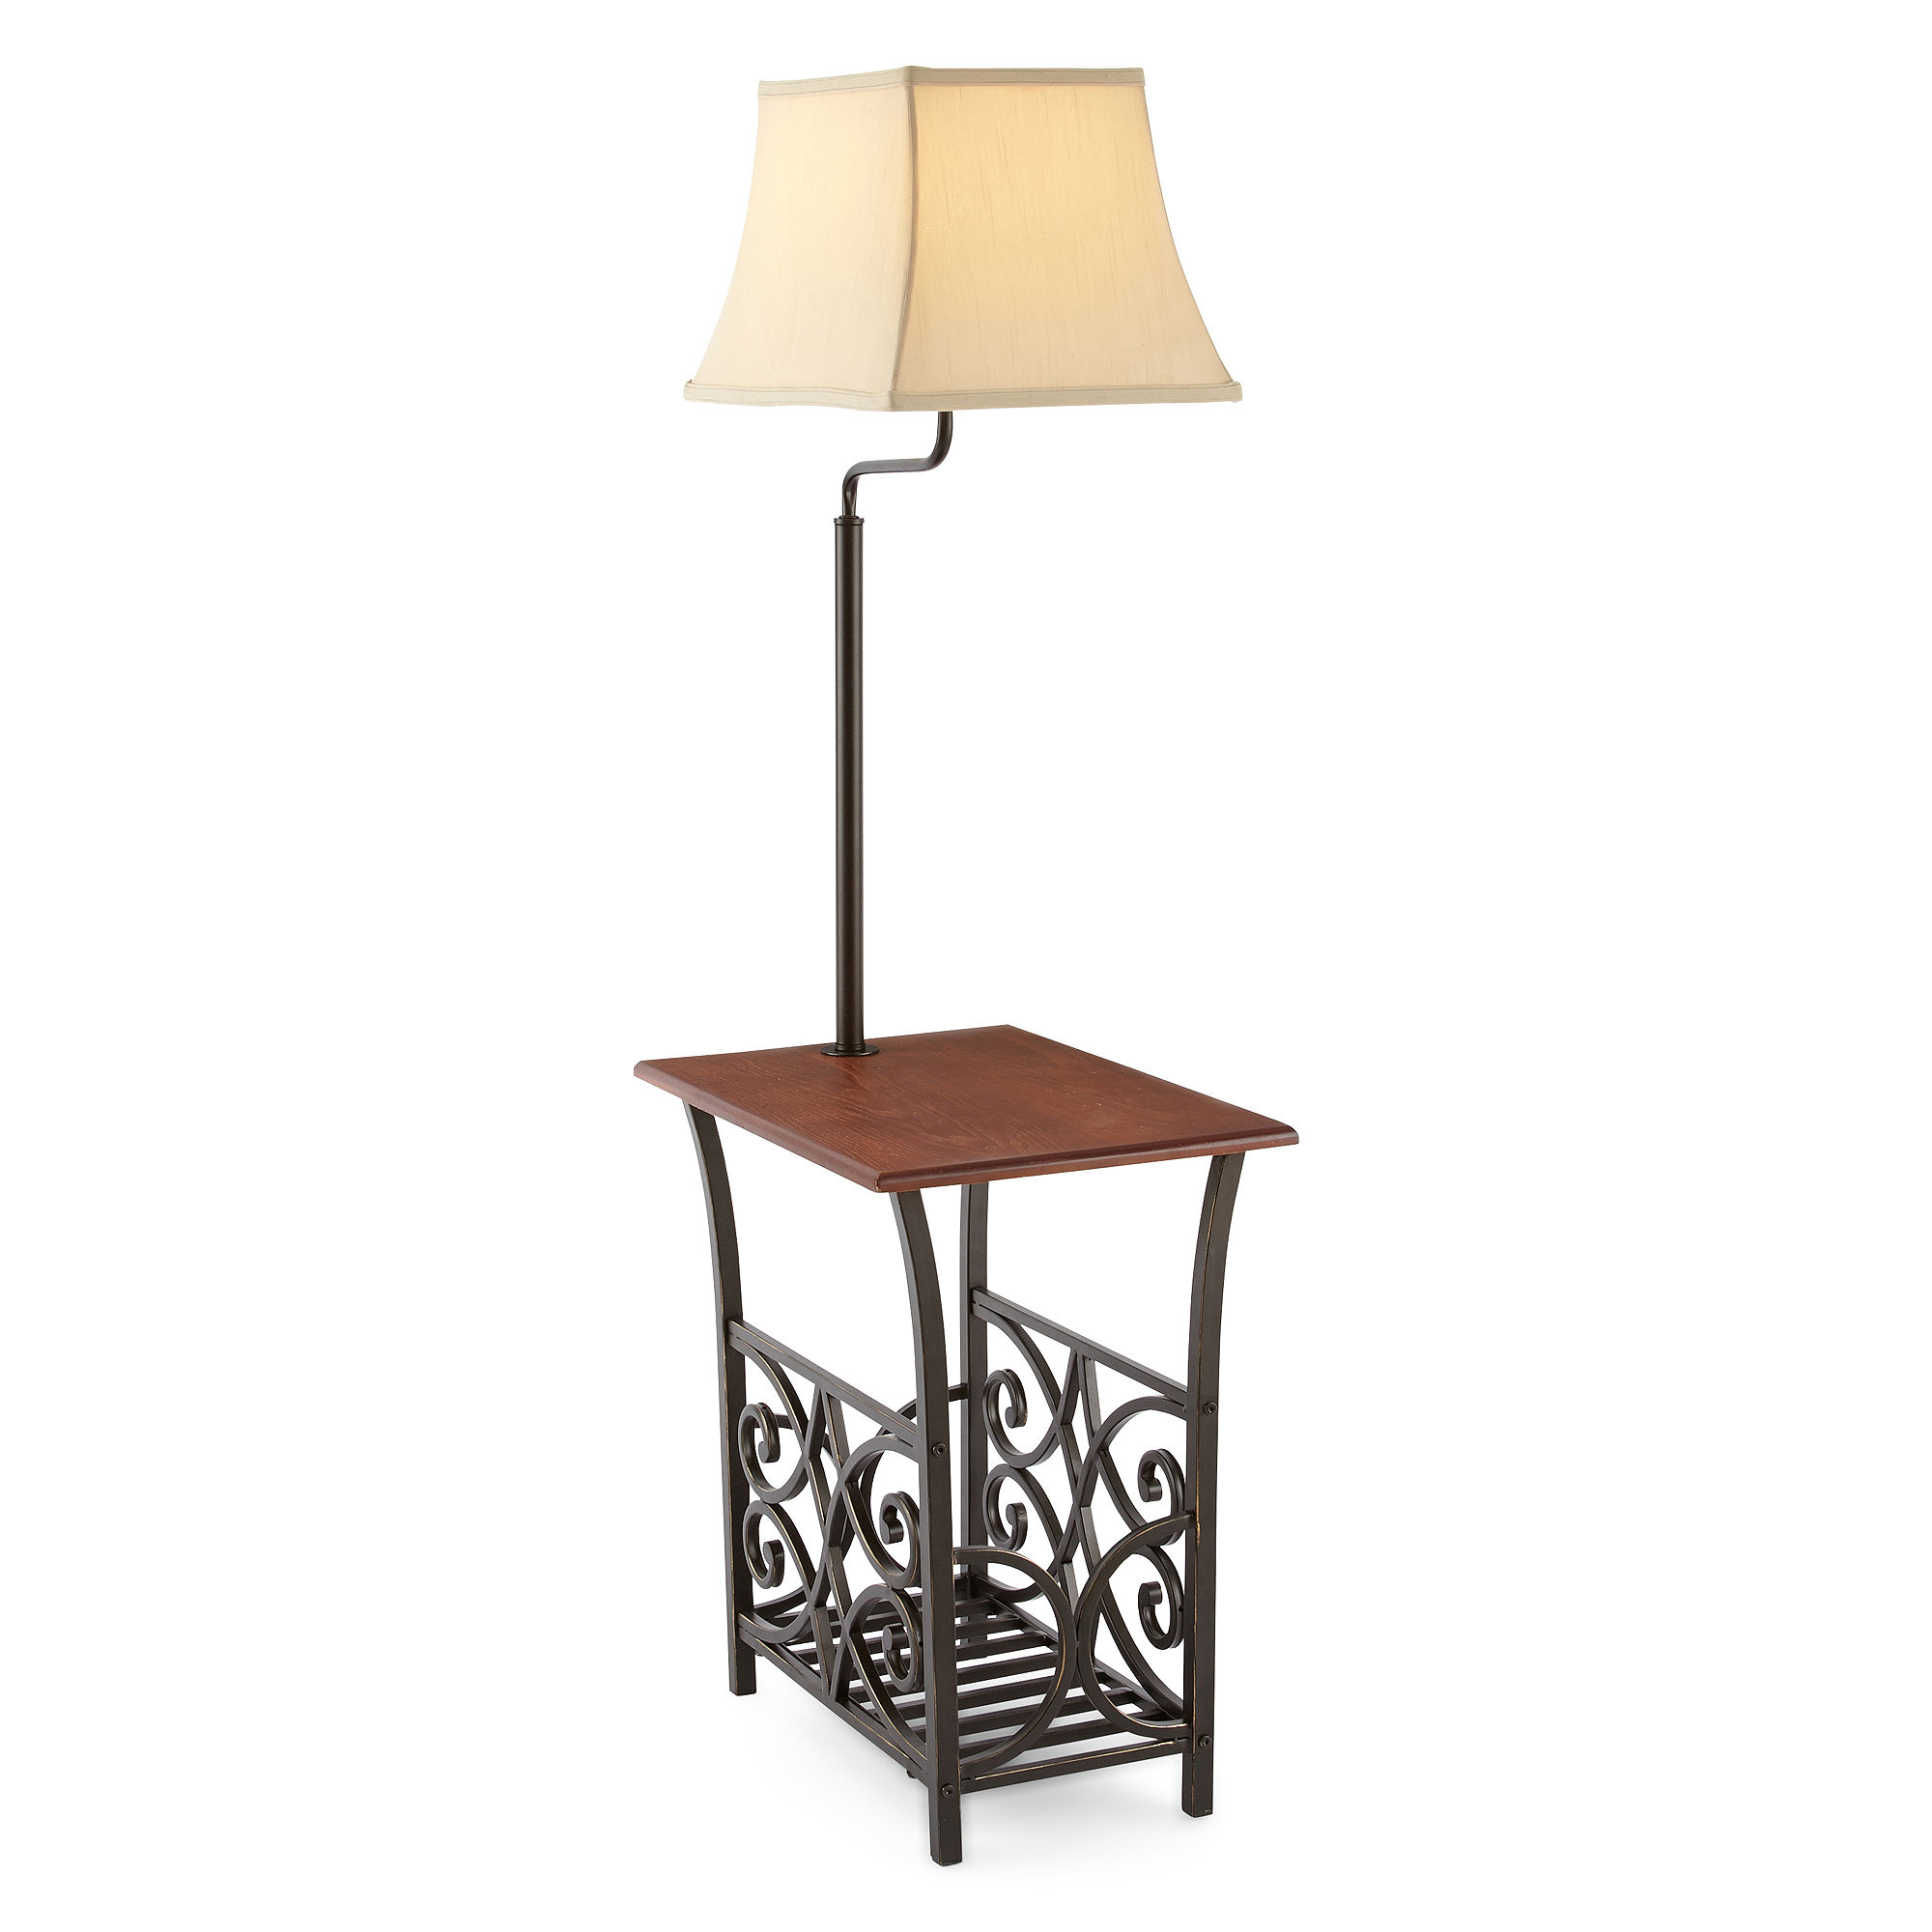 Wonderful image of  table with lamp jcpenney home magazine rack side table with lamp this with #A87523 color and 2000x2000 pixels